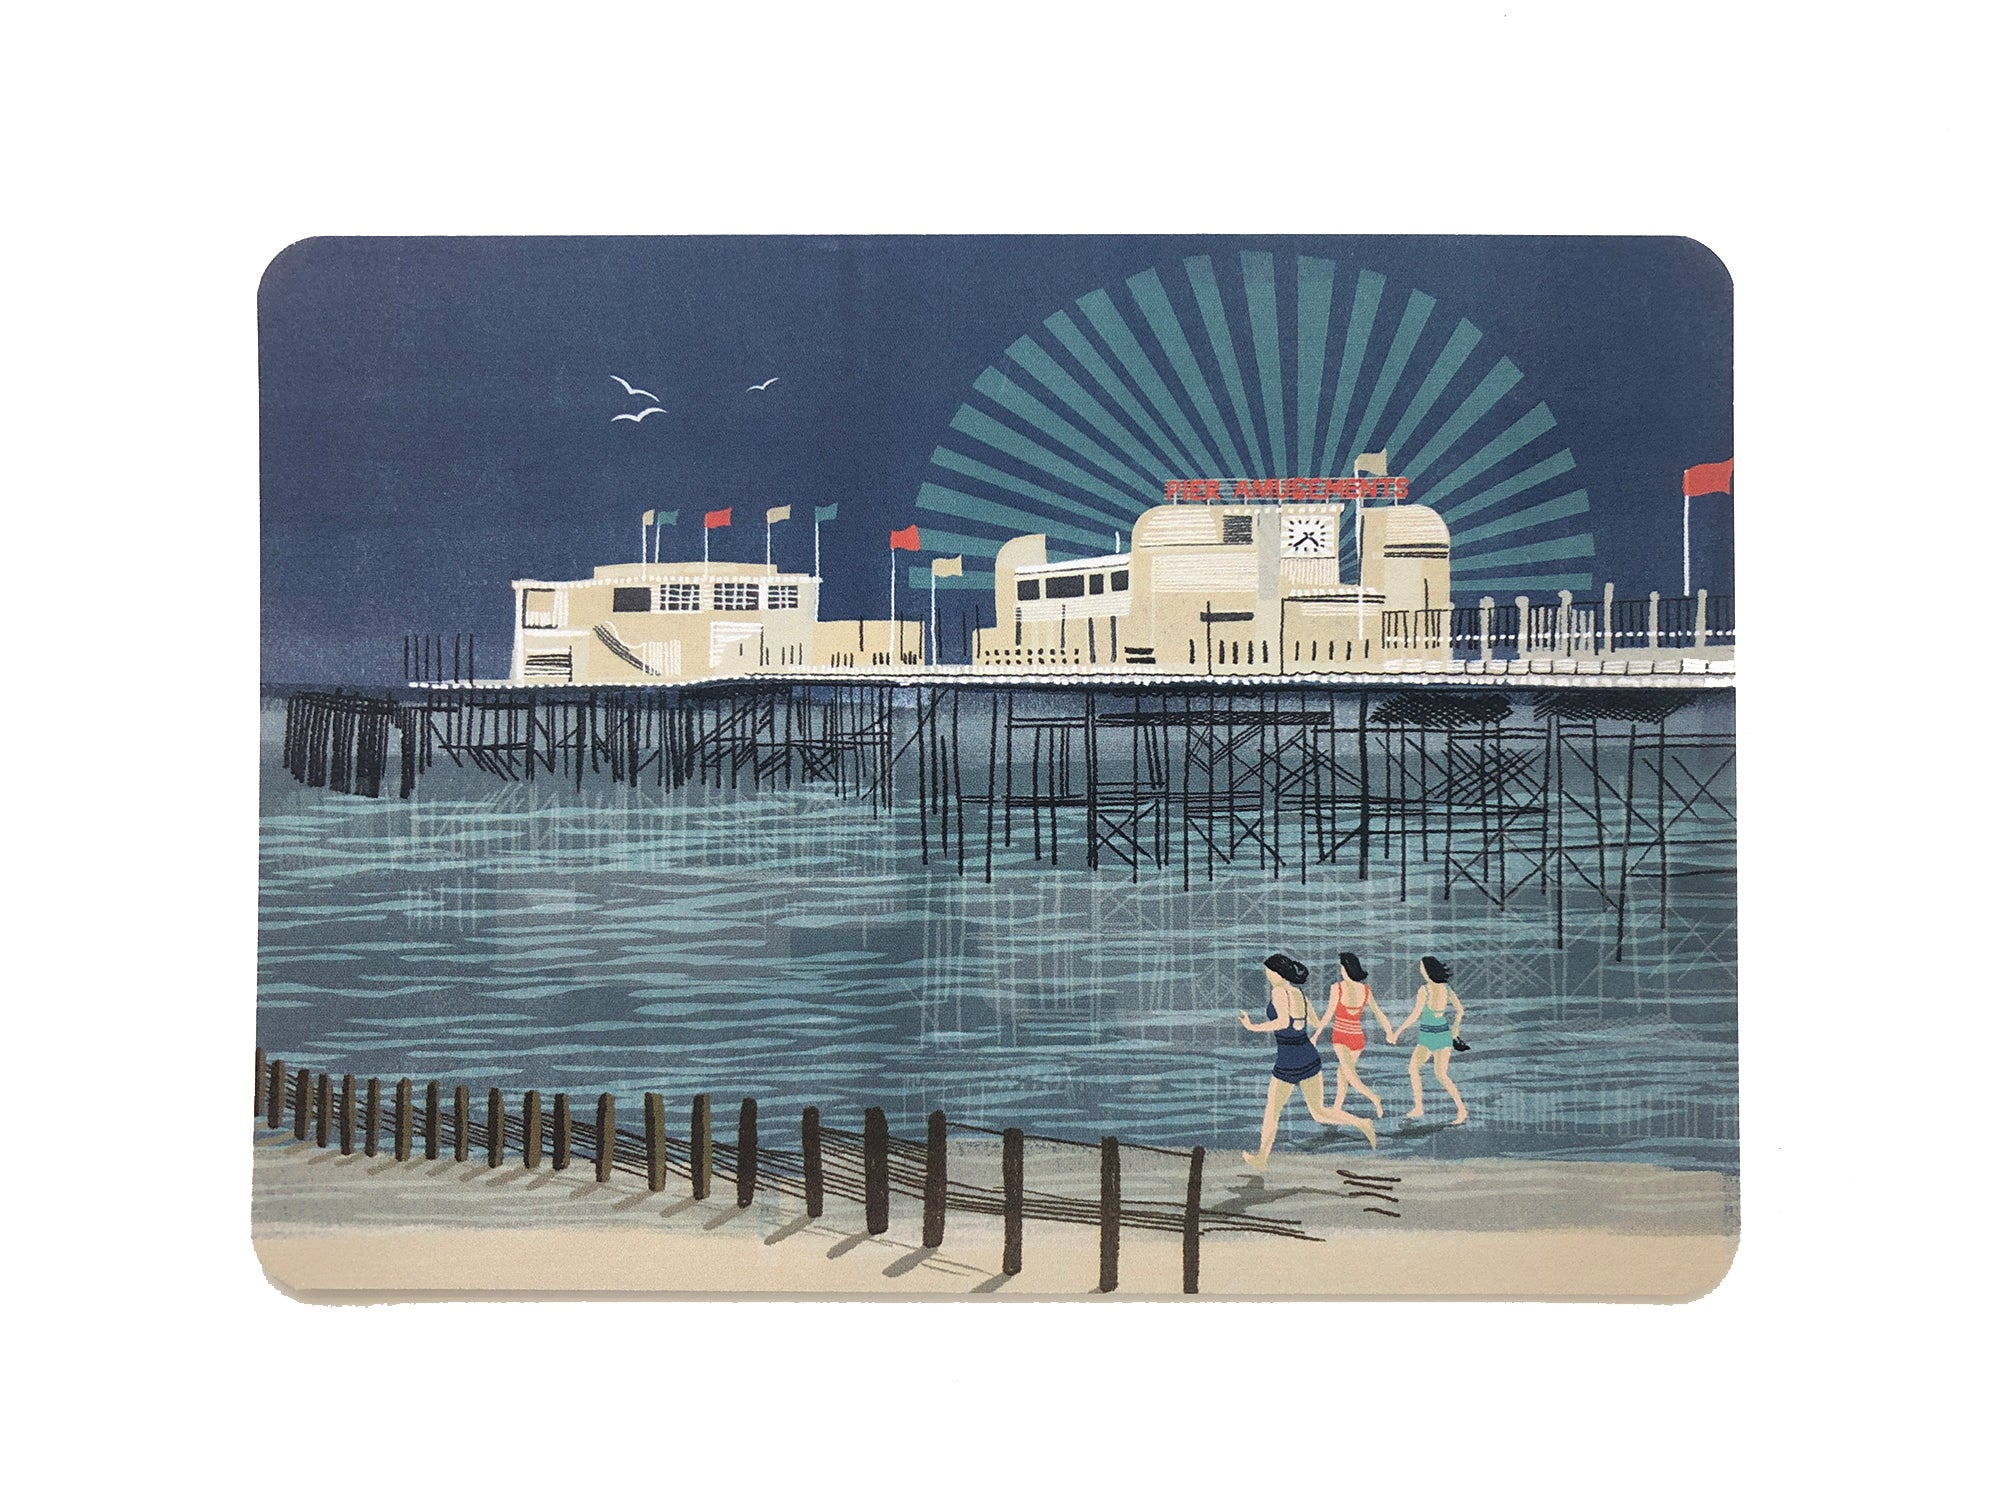 Worthing Pier postcard - Inspired